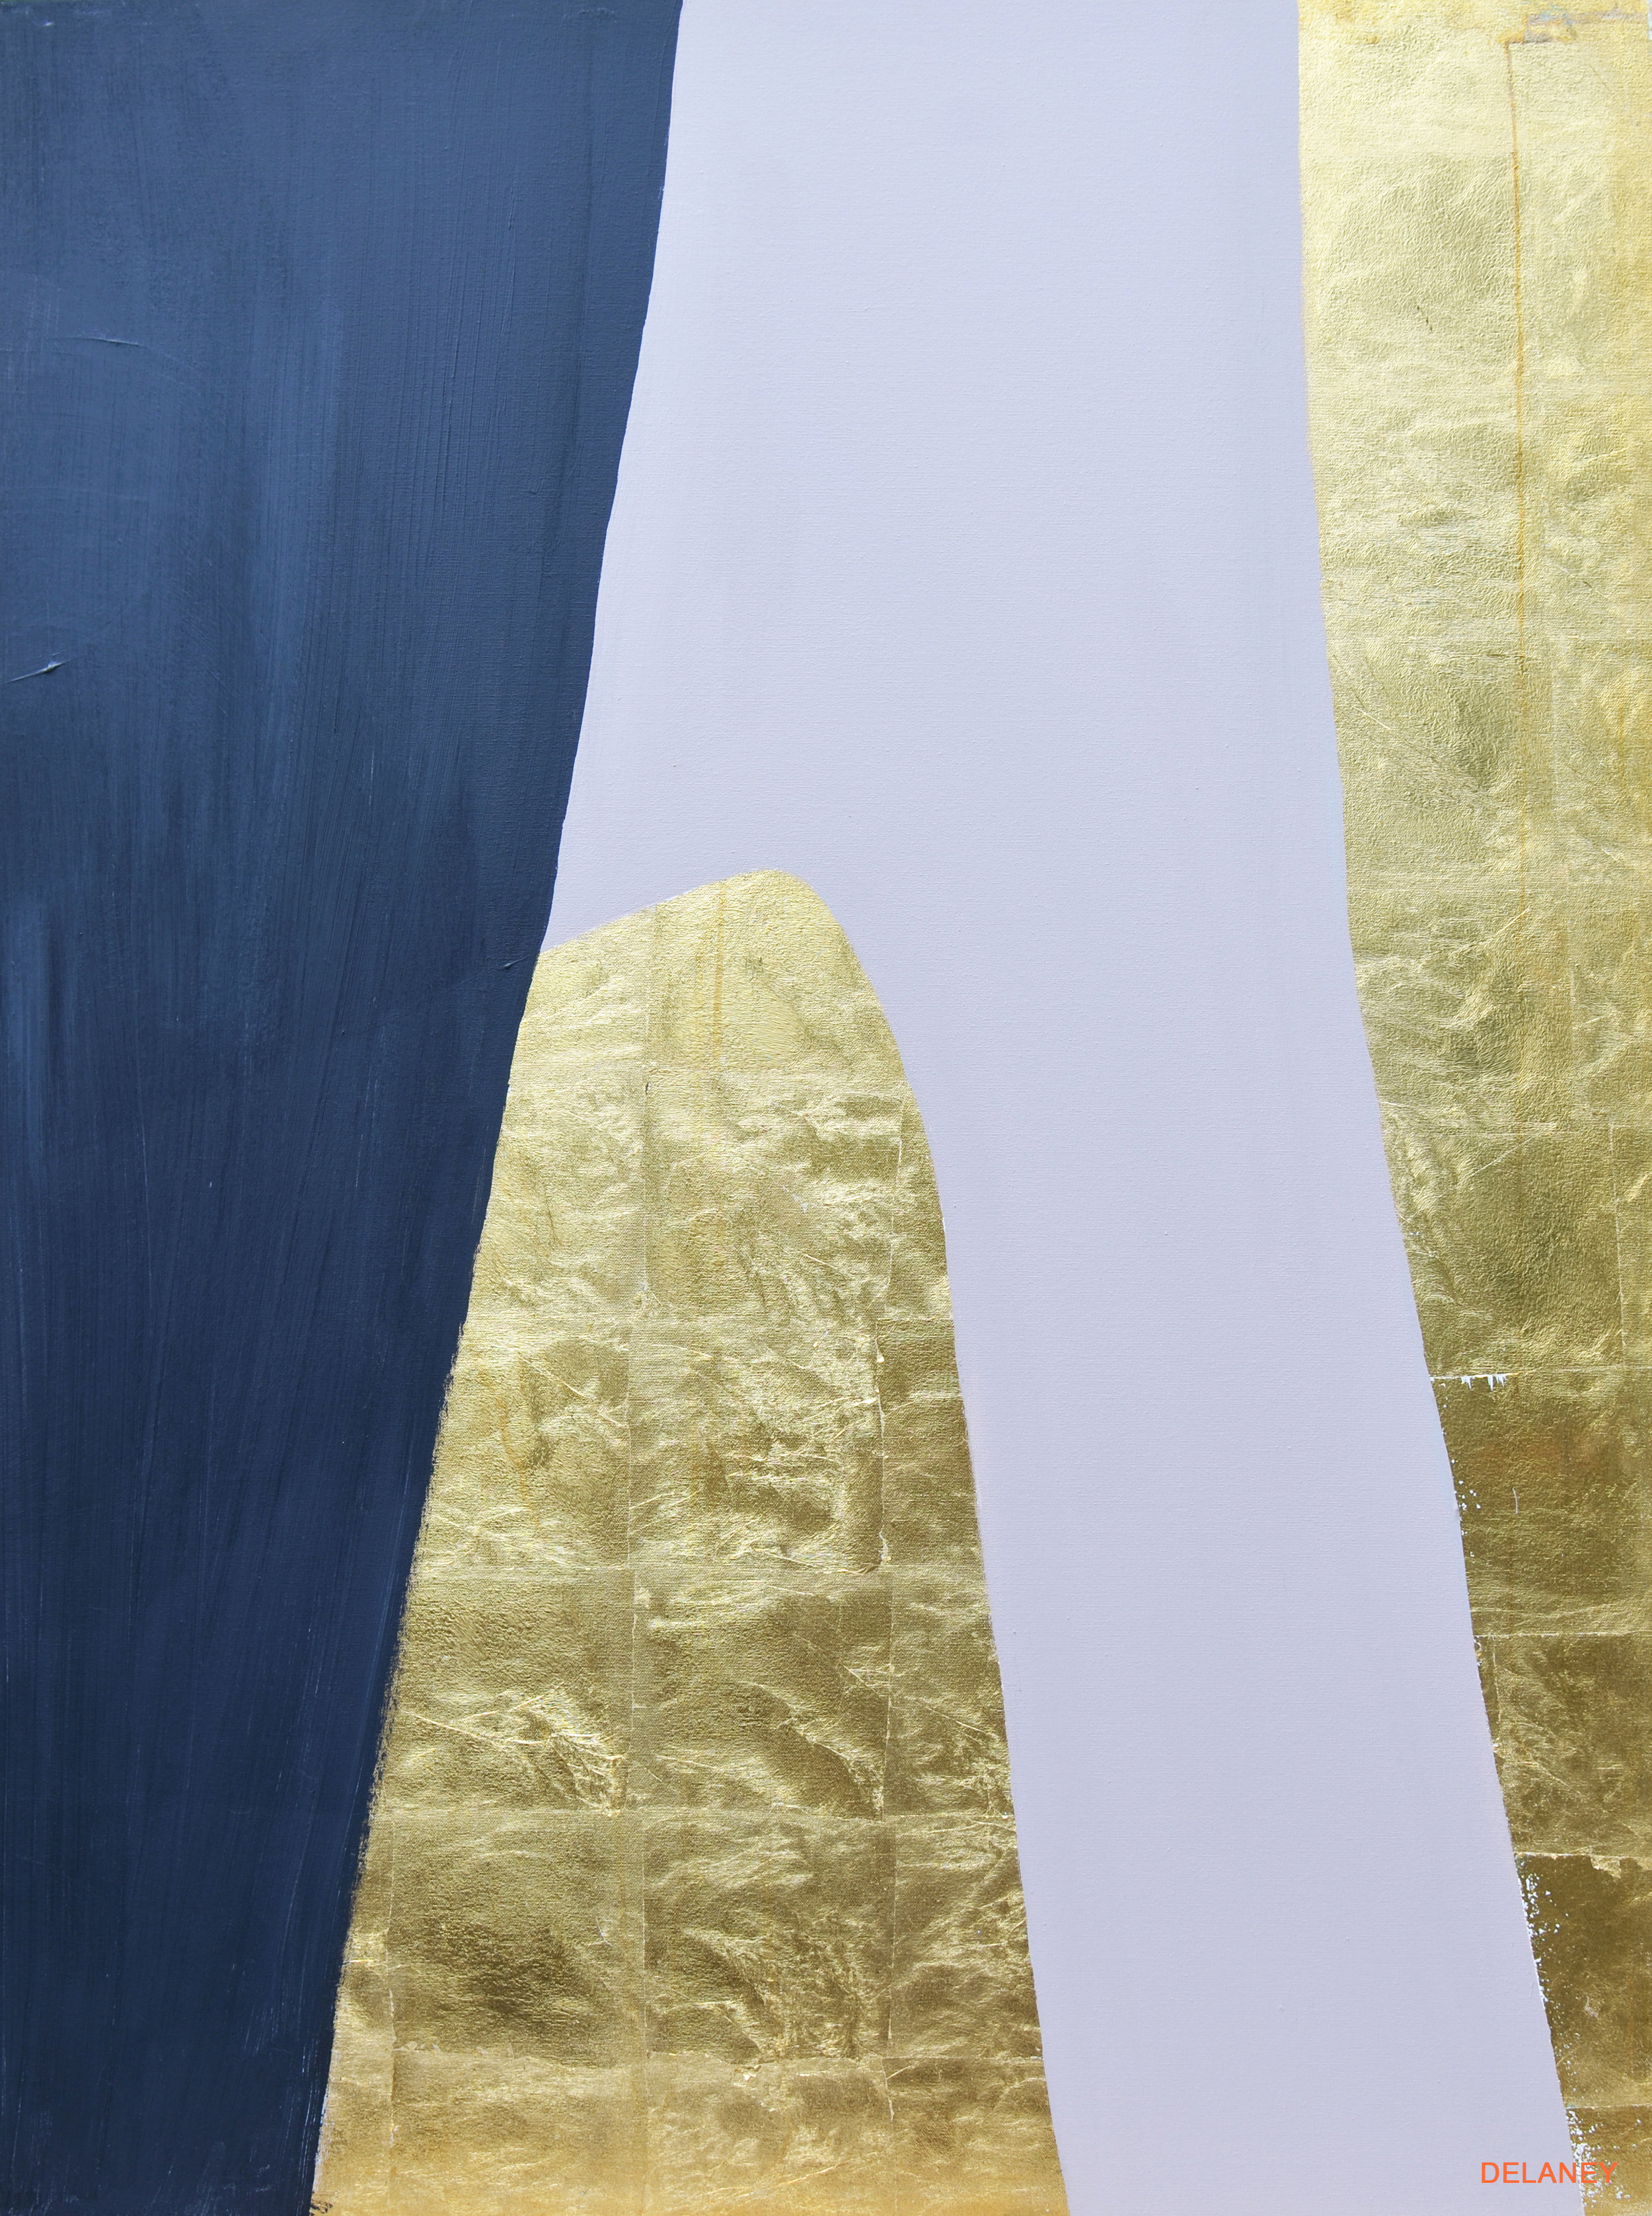 Grey Triptych #3  Gold leaf and acrylic on canvas (122x91cm)